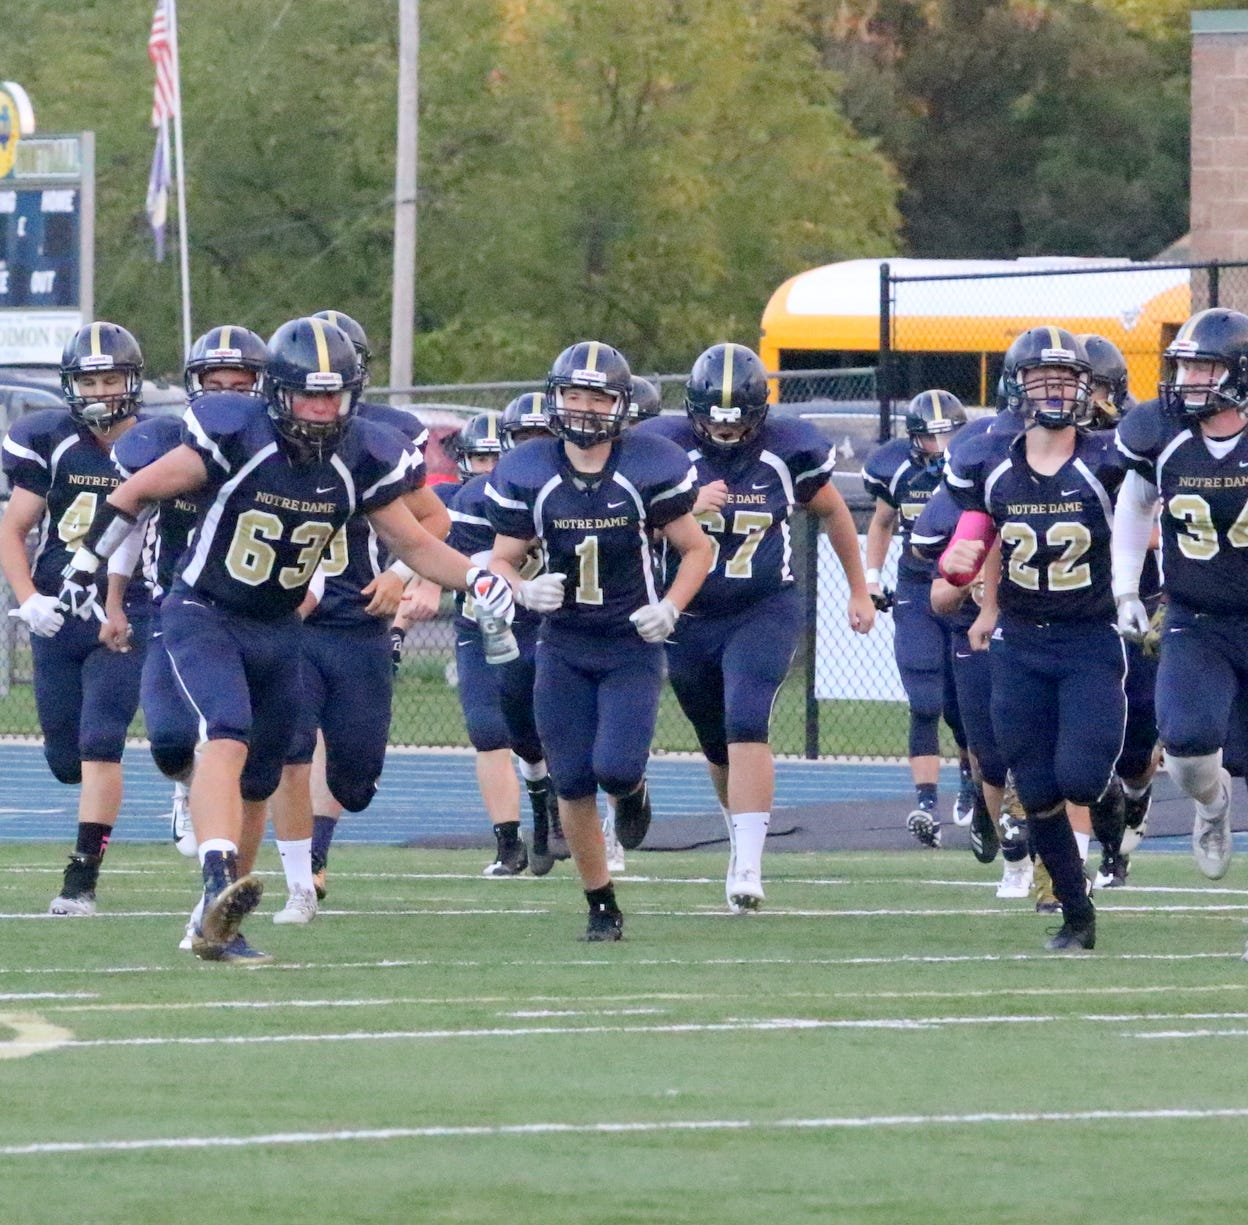 Best in Upstate: 8-man football a thrilling option in a new high school world